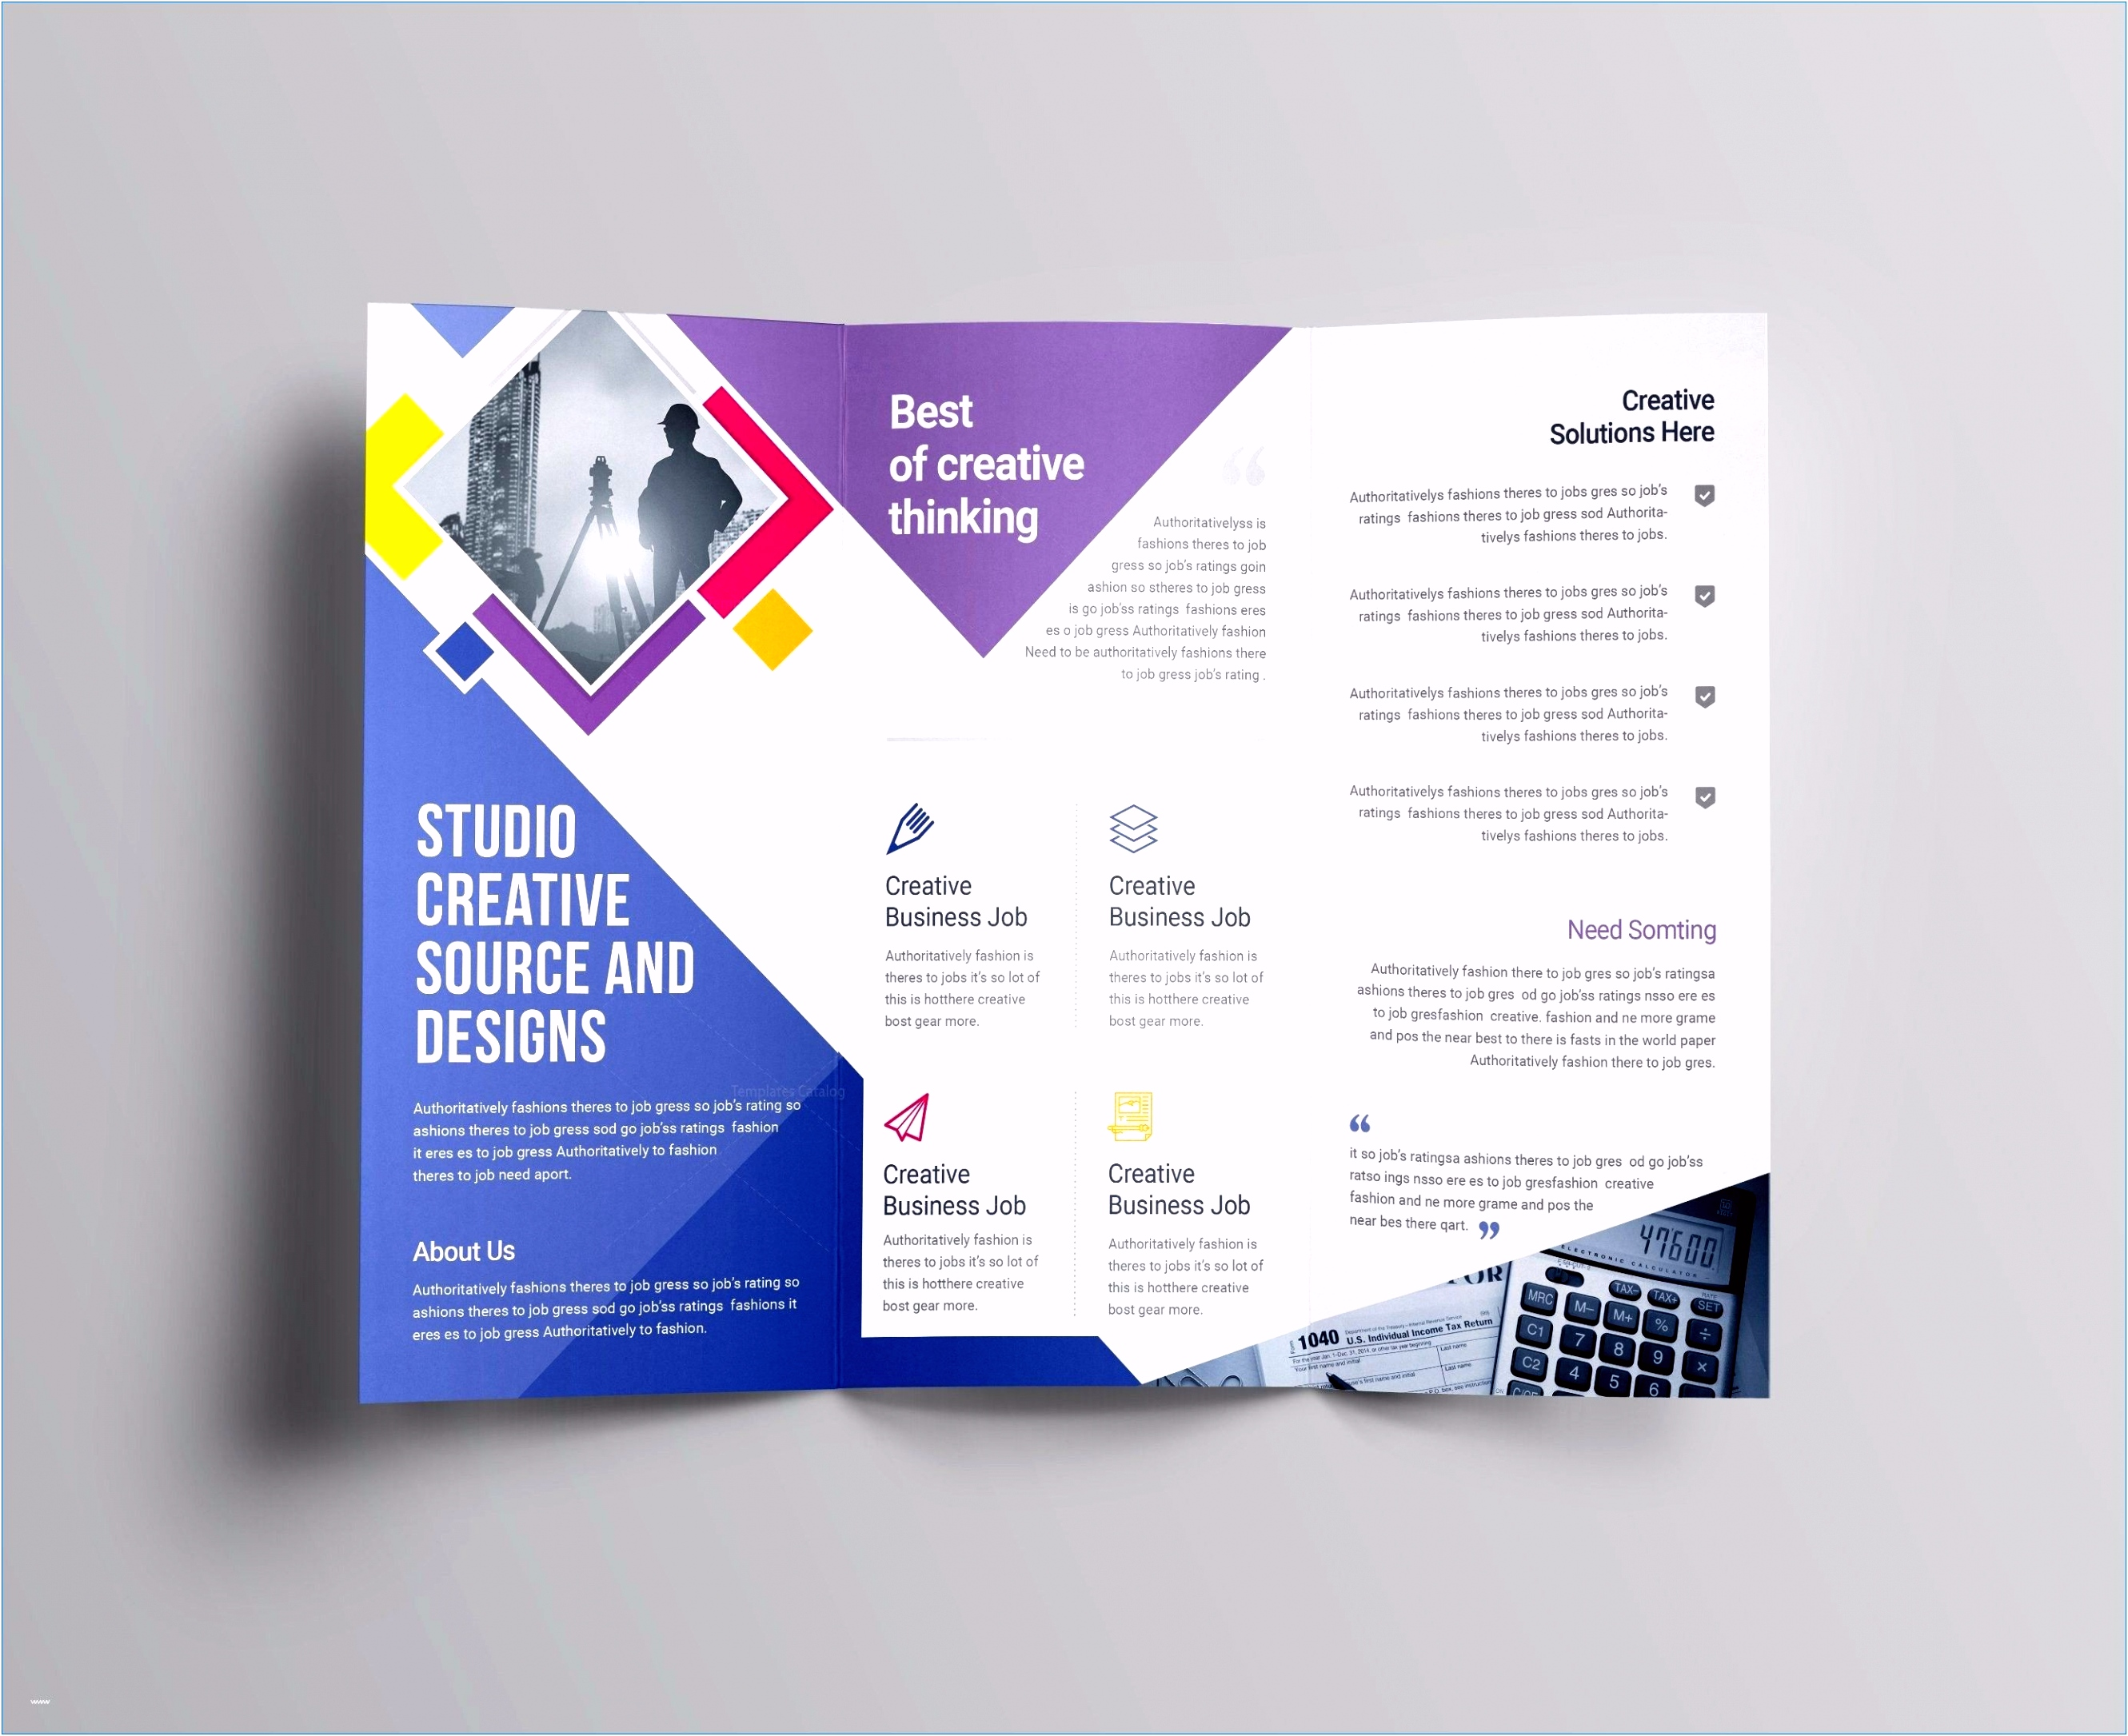 Corporate Design Vorlage Swot Infographic – ¢Ë†Å¡ Professional Powerpoint Templates Unusual S3os61llb8 Vmiku5xcgs